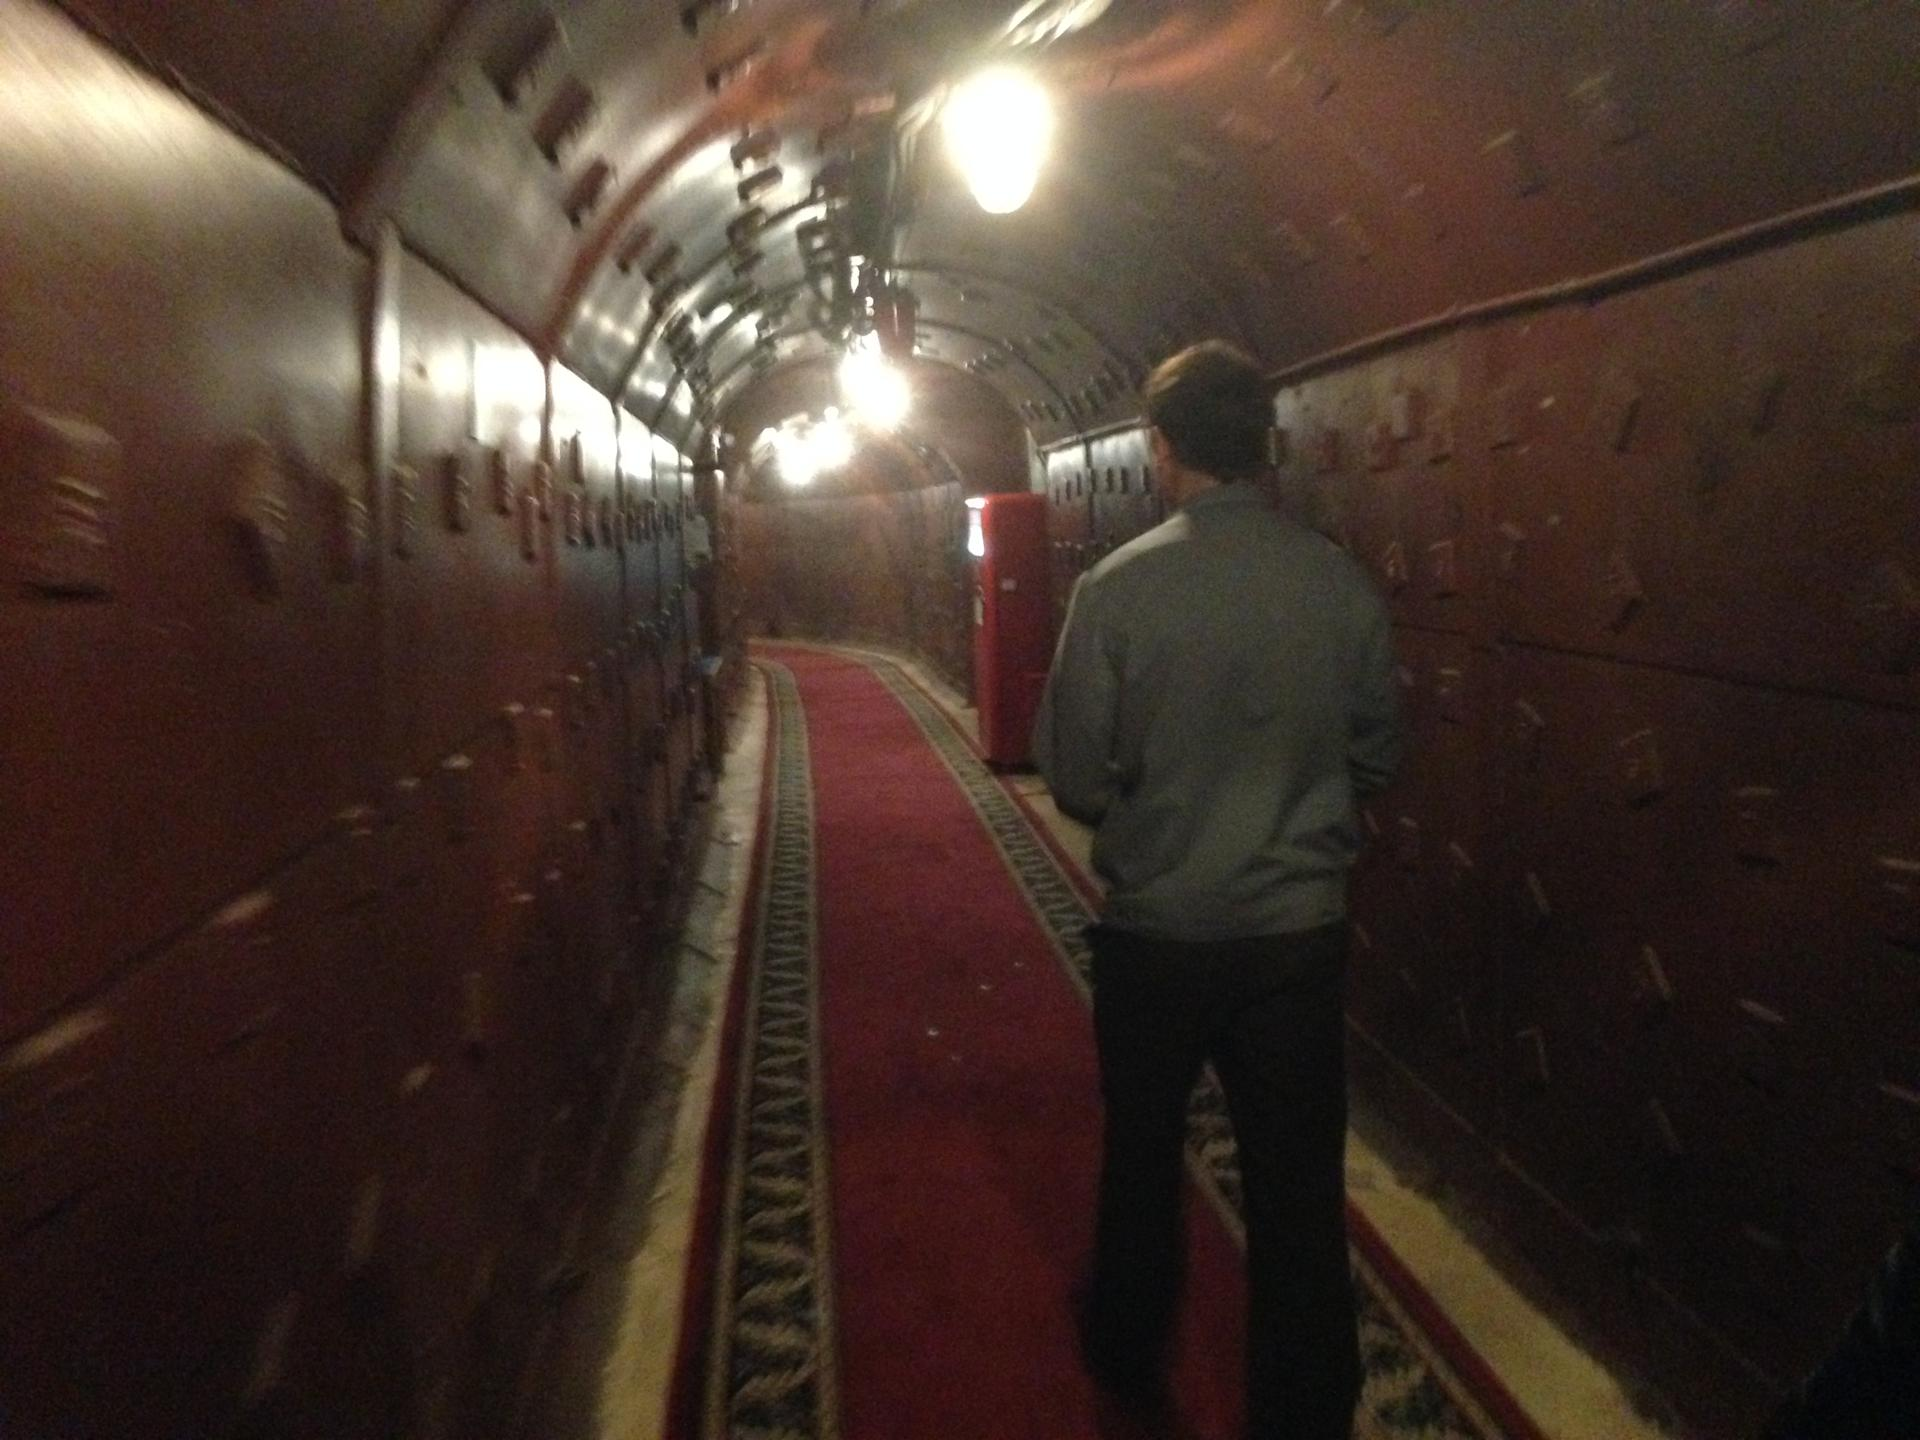 Tour guide Fyodor Belousov moved through a corridor in the Cold War museum at Bunker-42 on Taganka, located in a secret Cold War-era underground bunker that was designed to withstand a nuclear attack on Moscow.